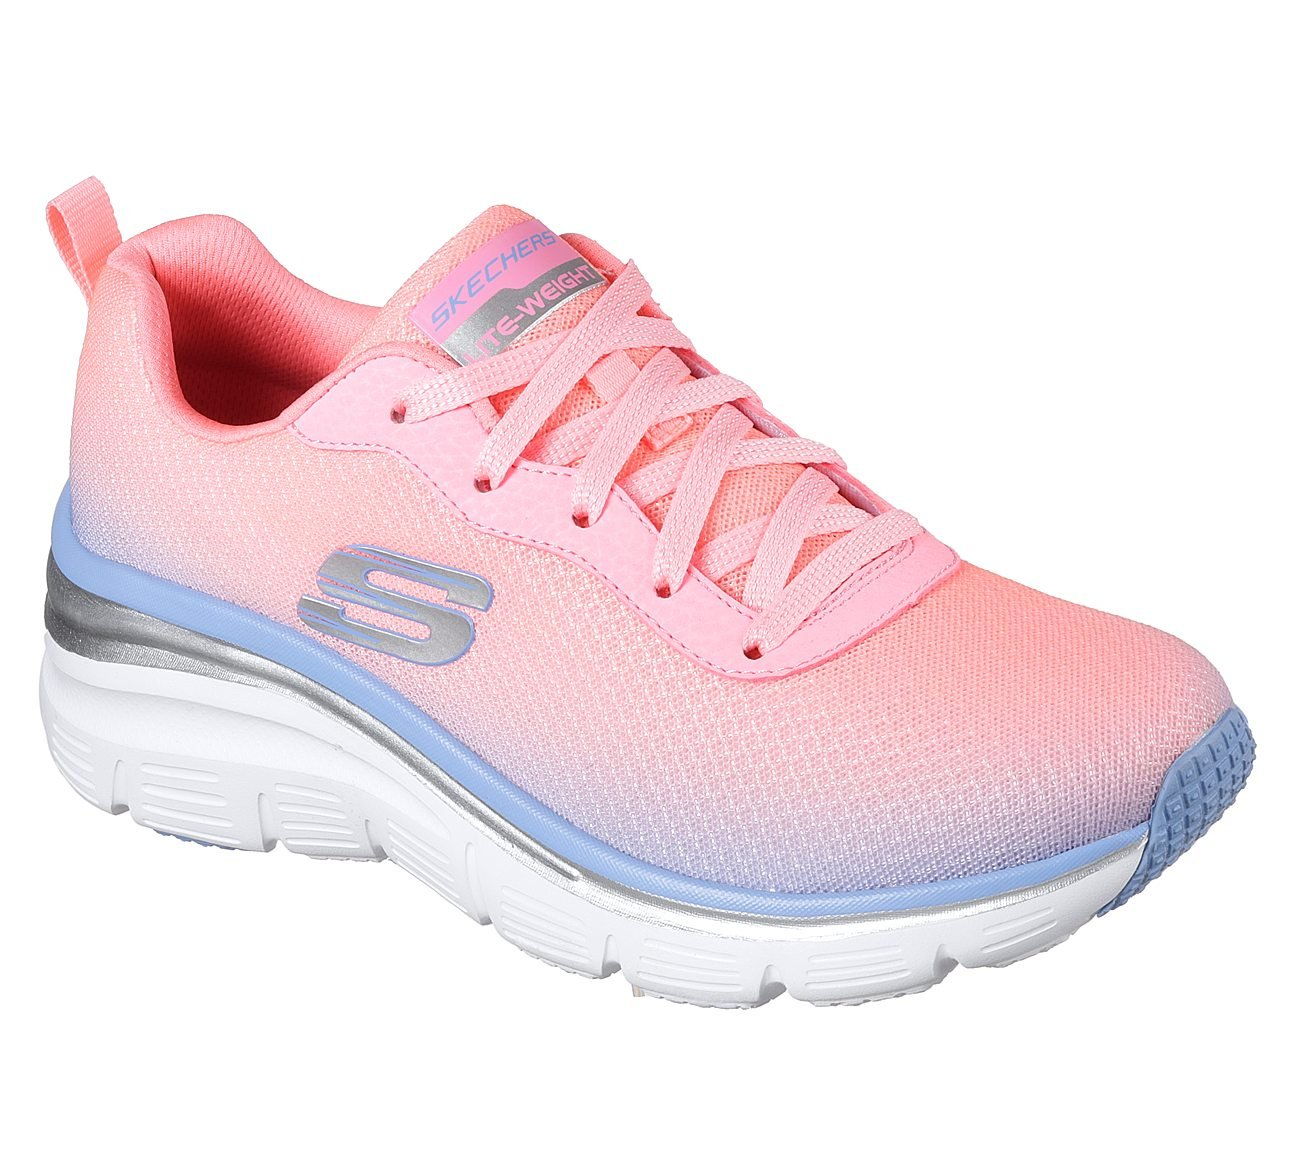 Skechers Fashion Fit Build up Womens Sneakers Pink/Lavender 9